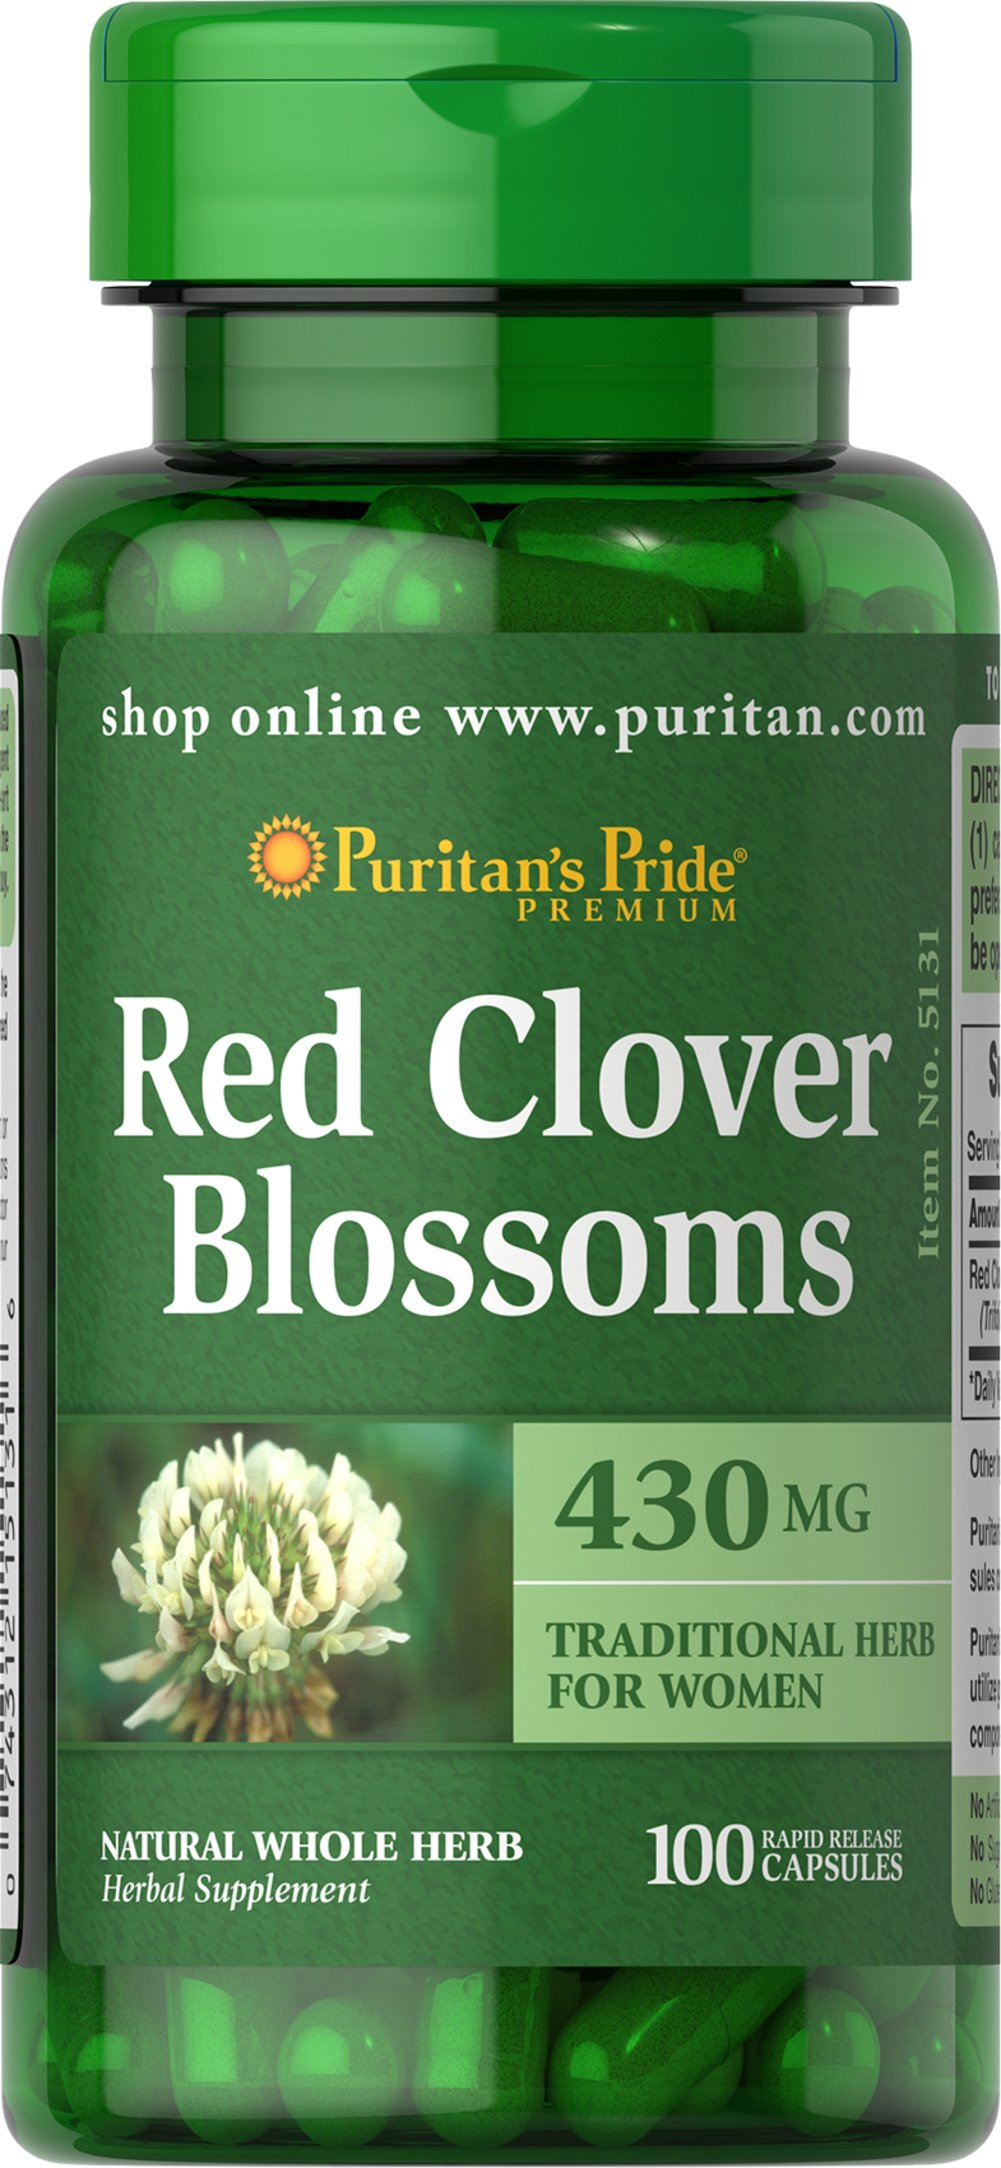 Red Clover Blossoms 430 mg <p>Red Clover is a natural source of plant nutrients that help promote well-being for women.** Red Clover Blossoms help support the physical changes which occur in a woman's body over time.**</p> 100 Capsules 430 mg $9.49